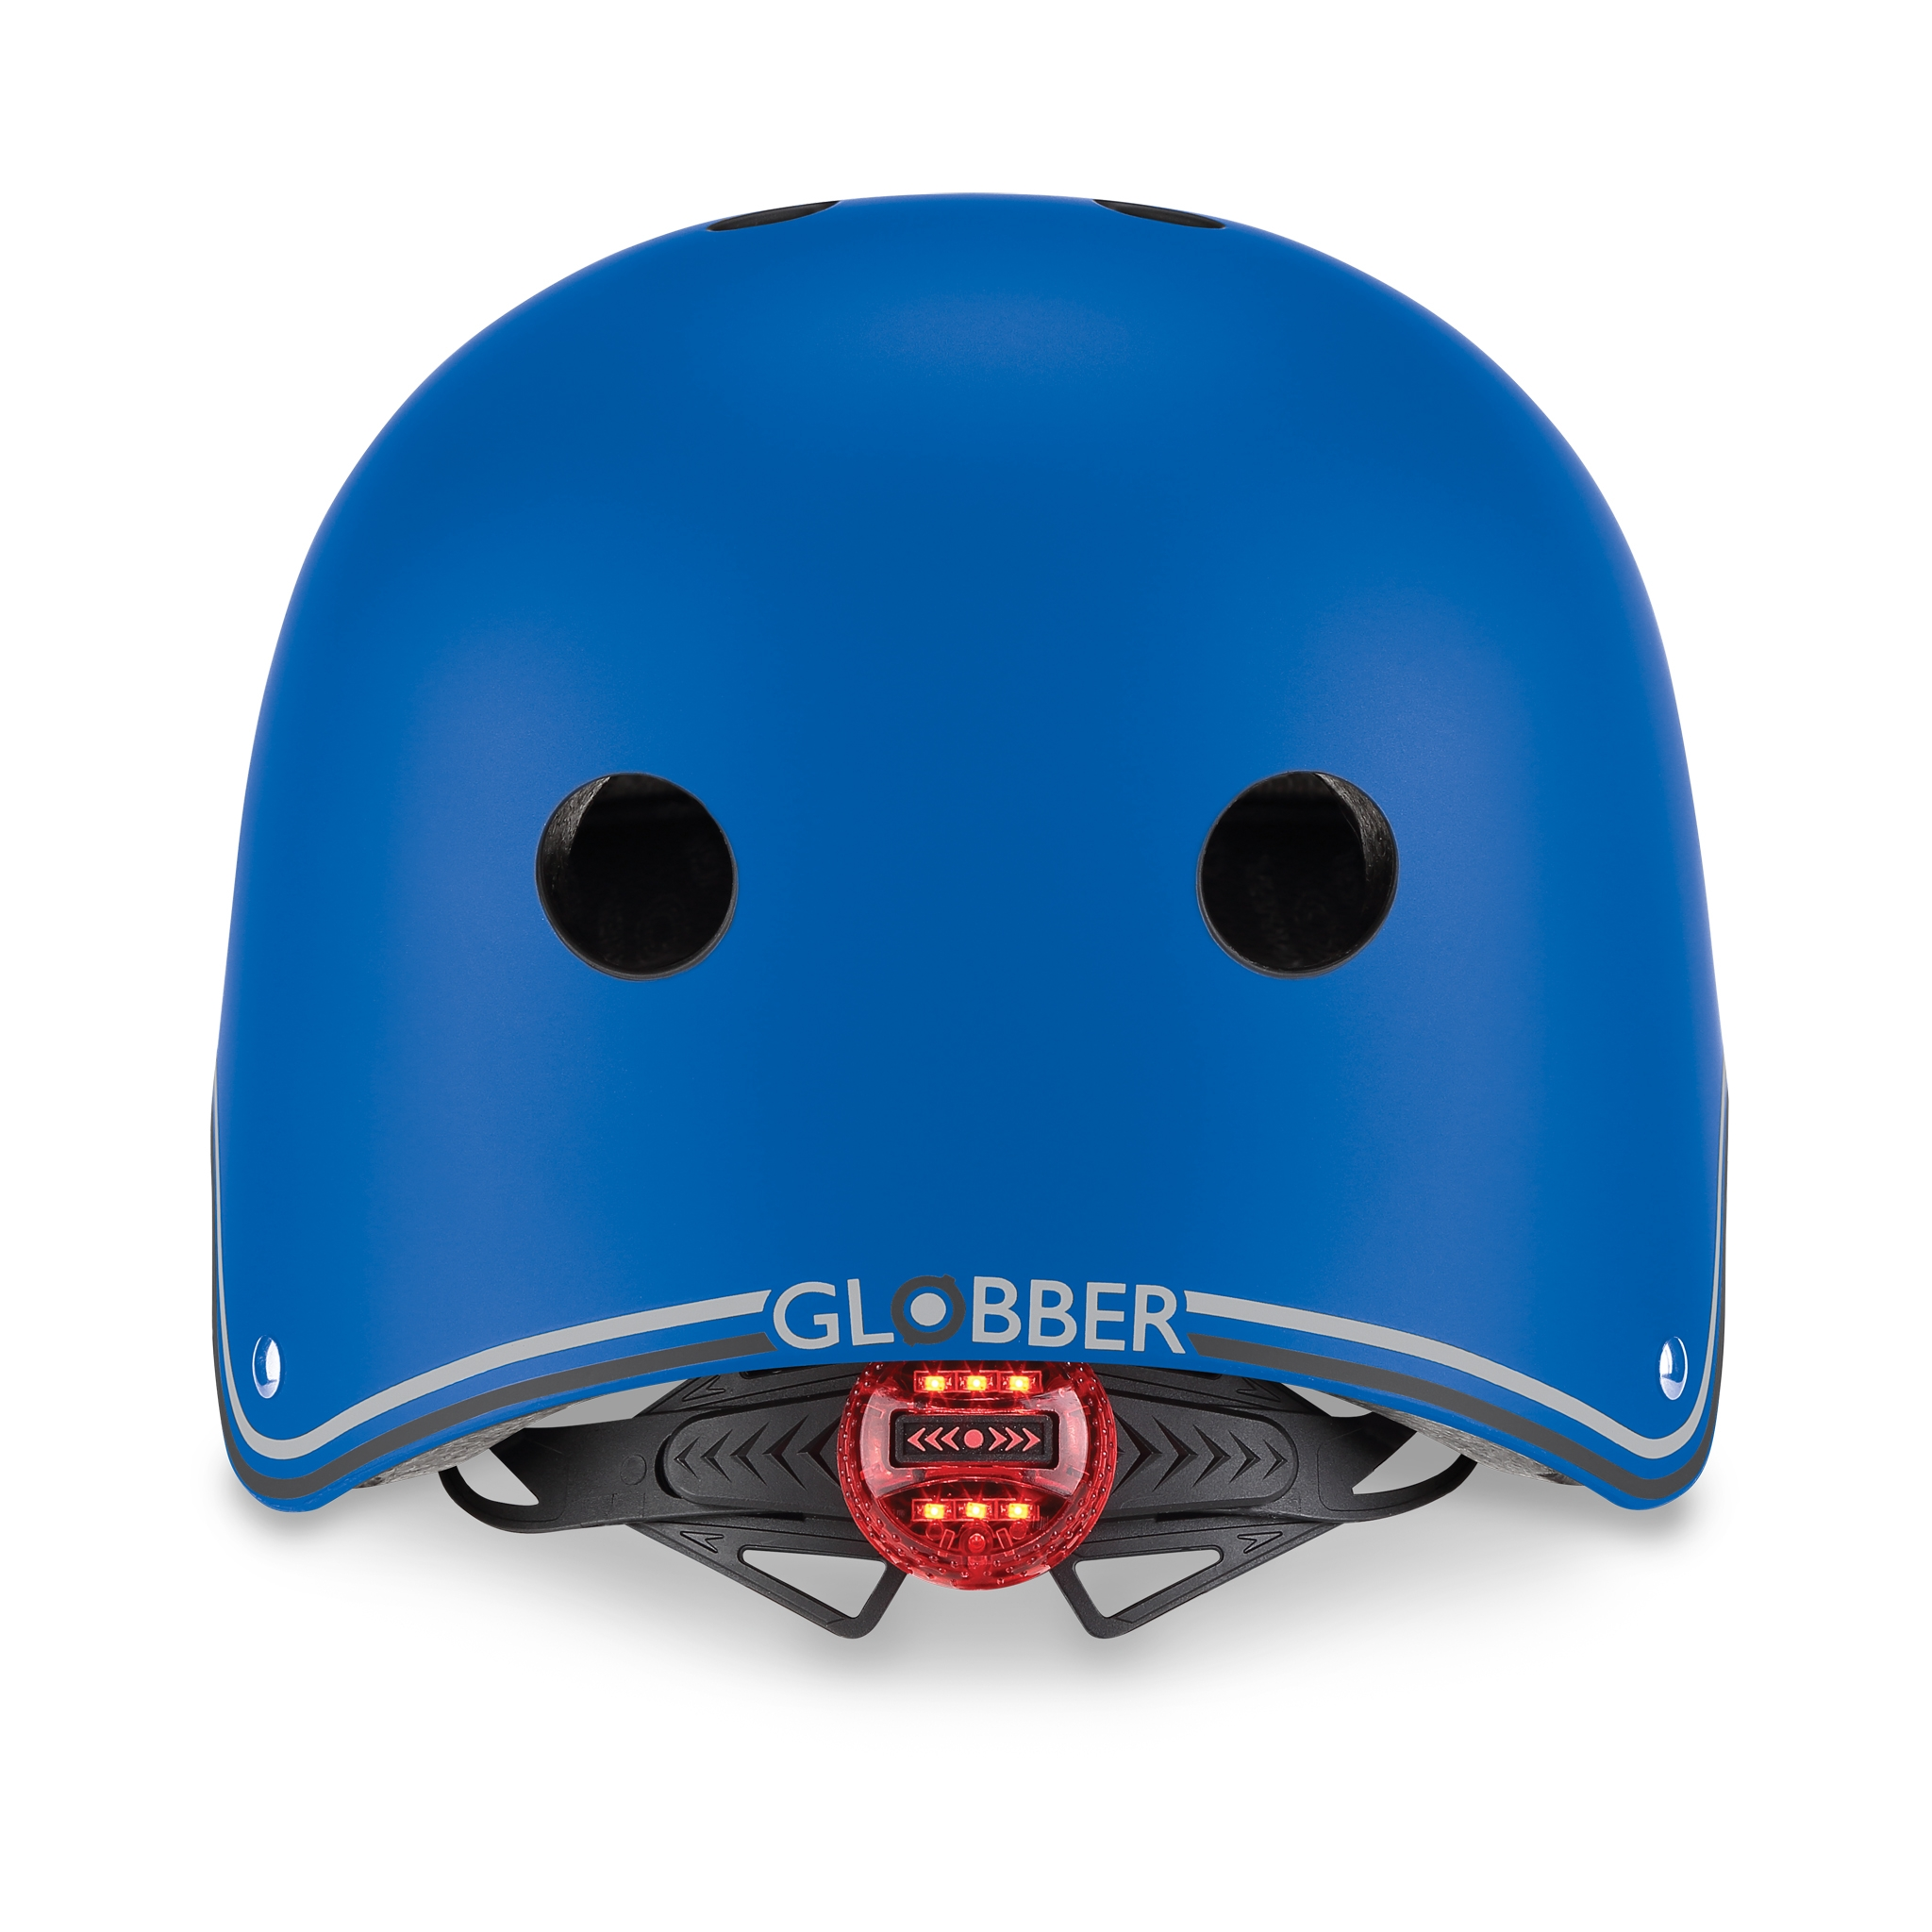 PRIMO-helmets-scooter-helmets-for-kids-with-LED-lights-safe-helmet-for-kids-navy-blue